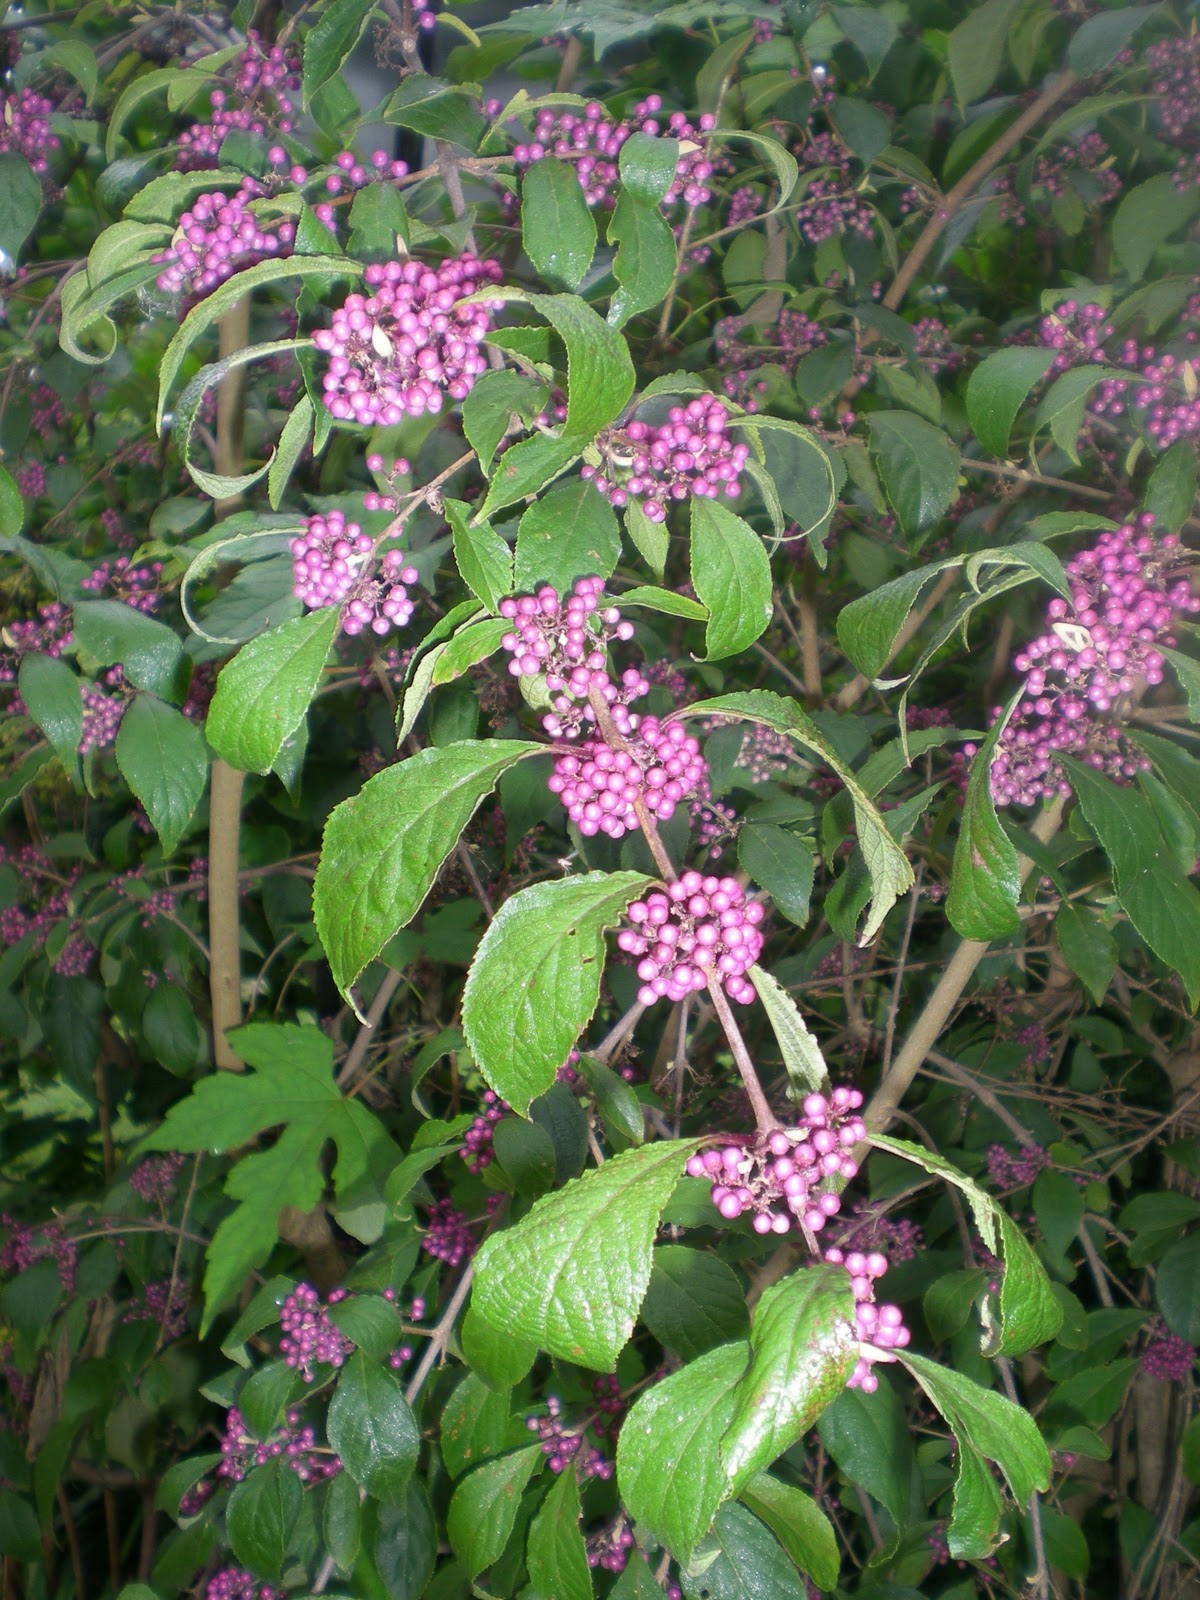 Jarvis House Deep Purple Flowering Shrubs in September at the Jarvis Garden